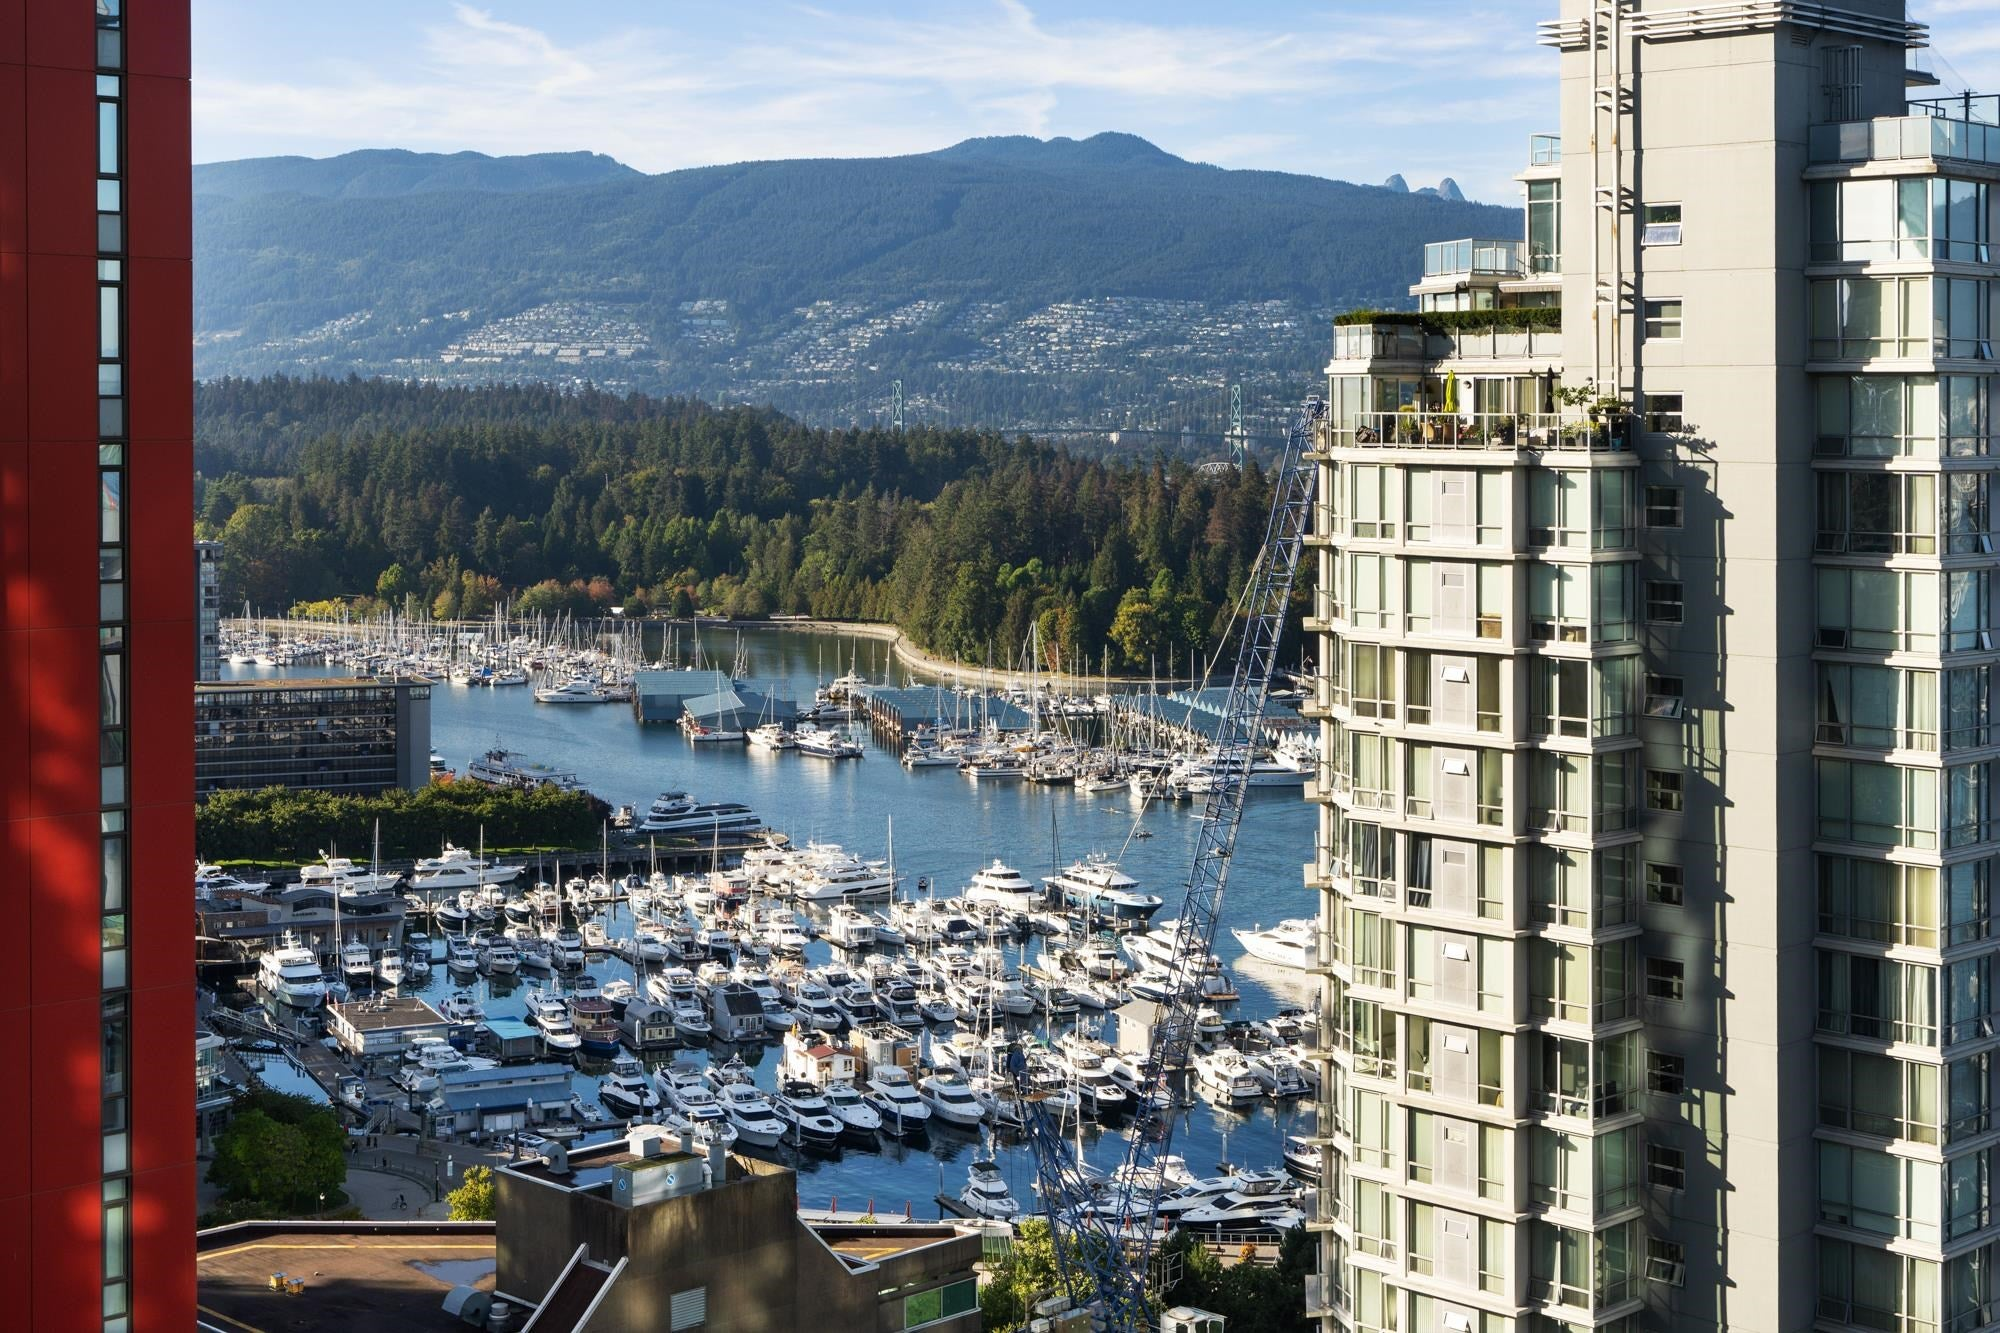 2601 1189 MELVILLE STREET - Coal Harbour Apartment/Condo for sale, 2 Bedrooms (R2617322) - #1